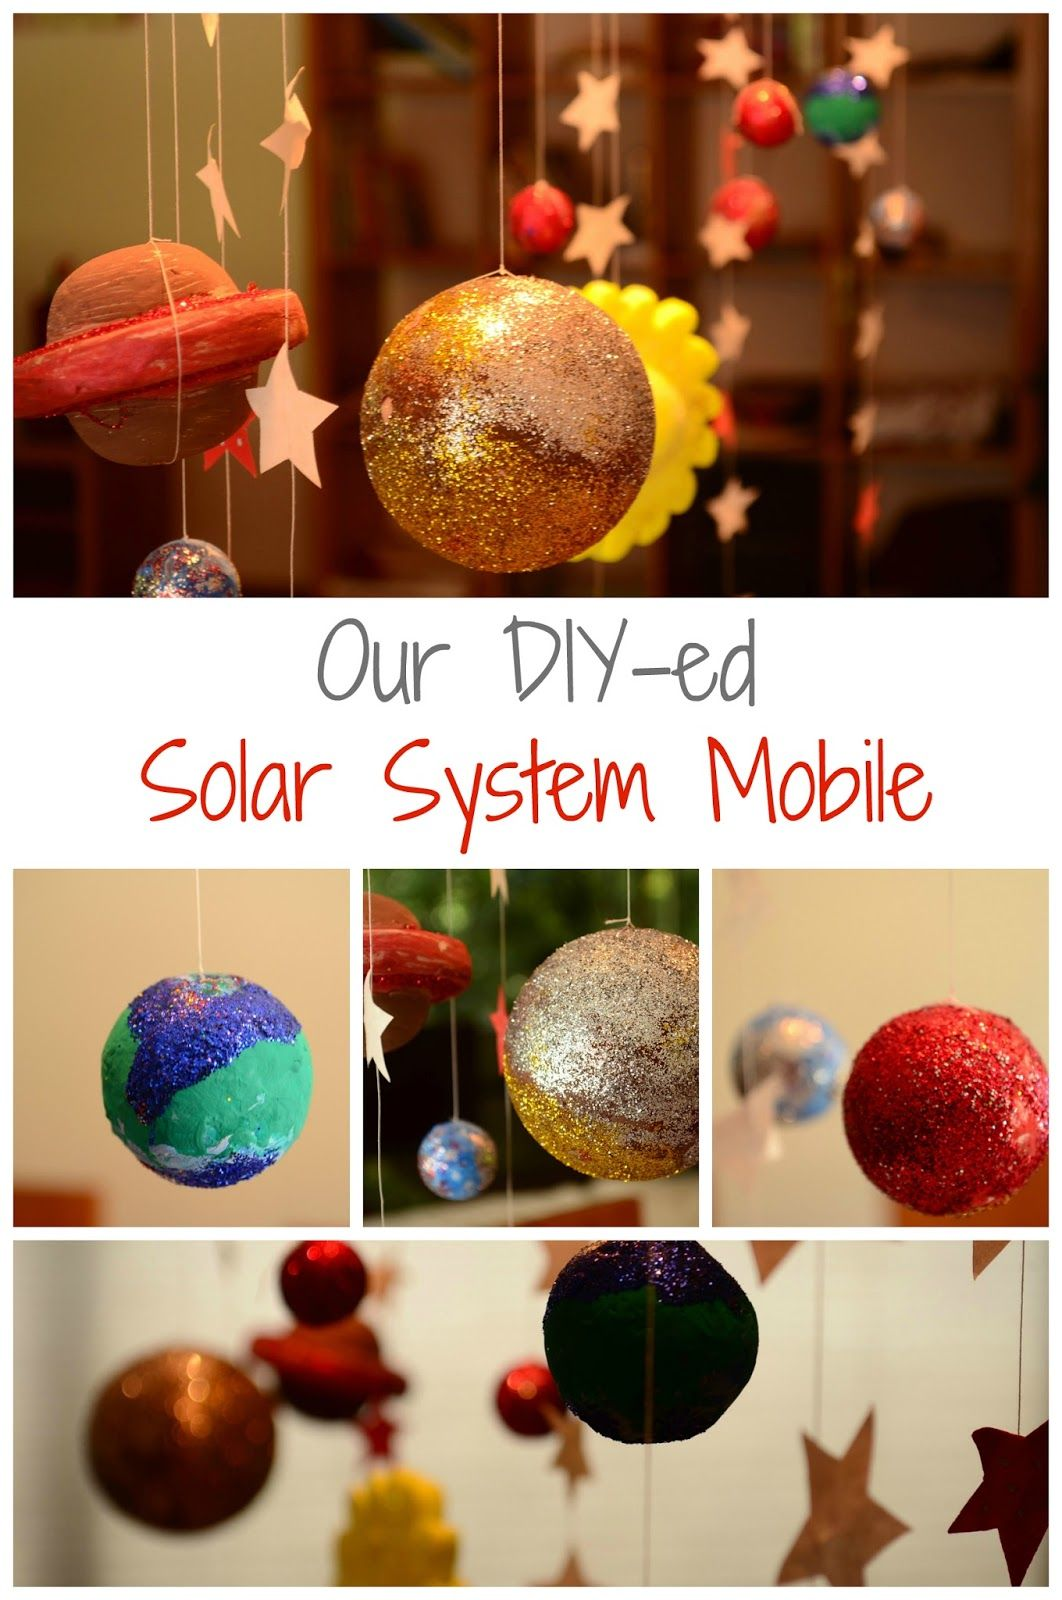 Our Diy Solar System Mobile